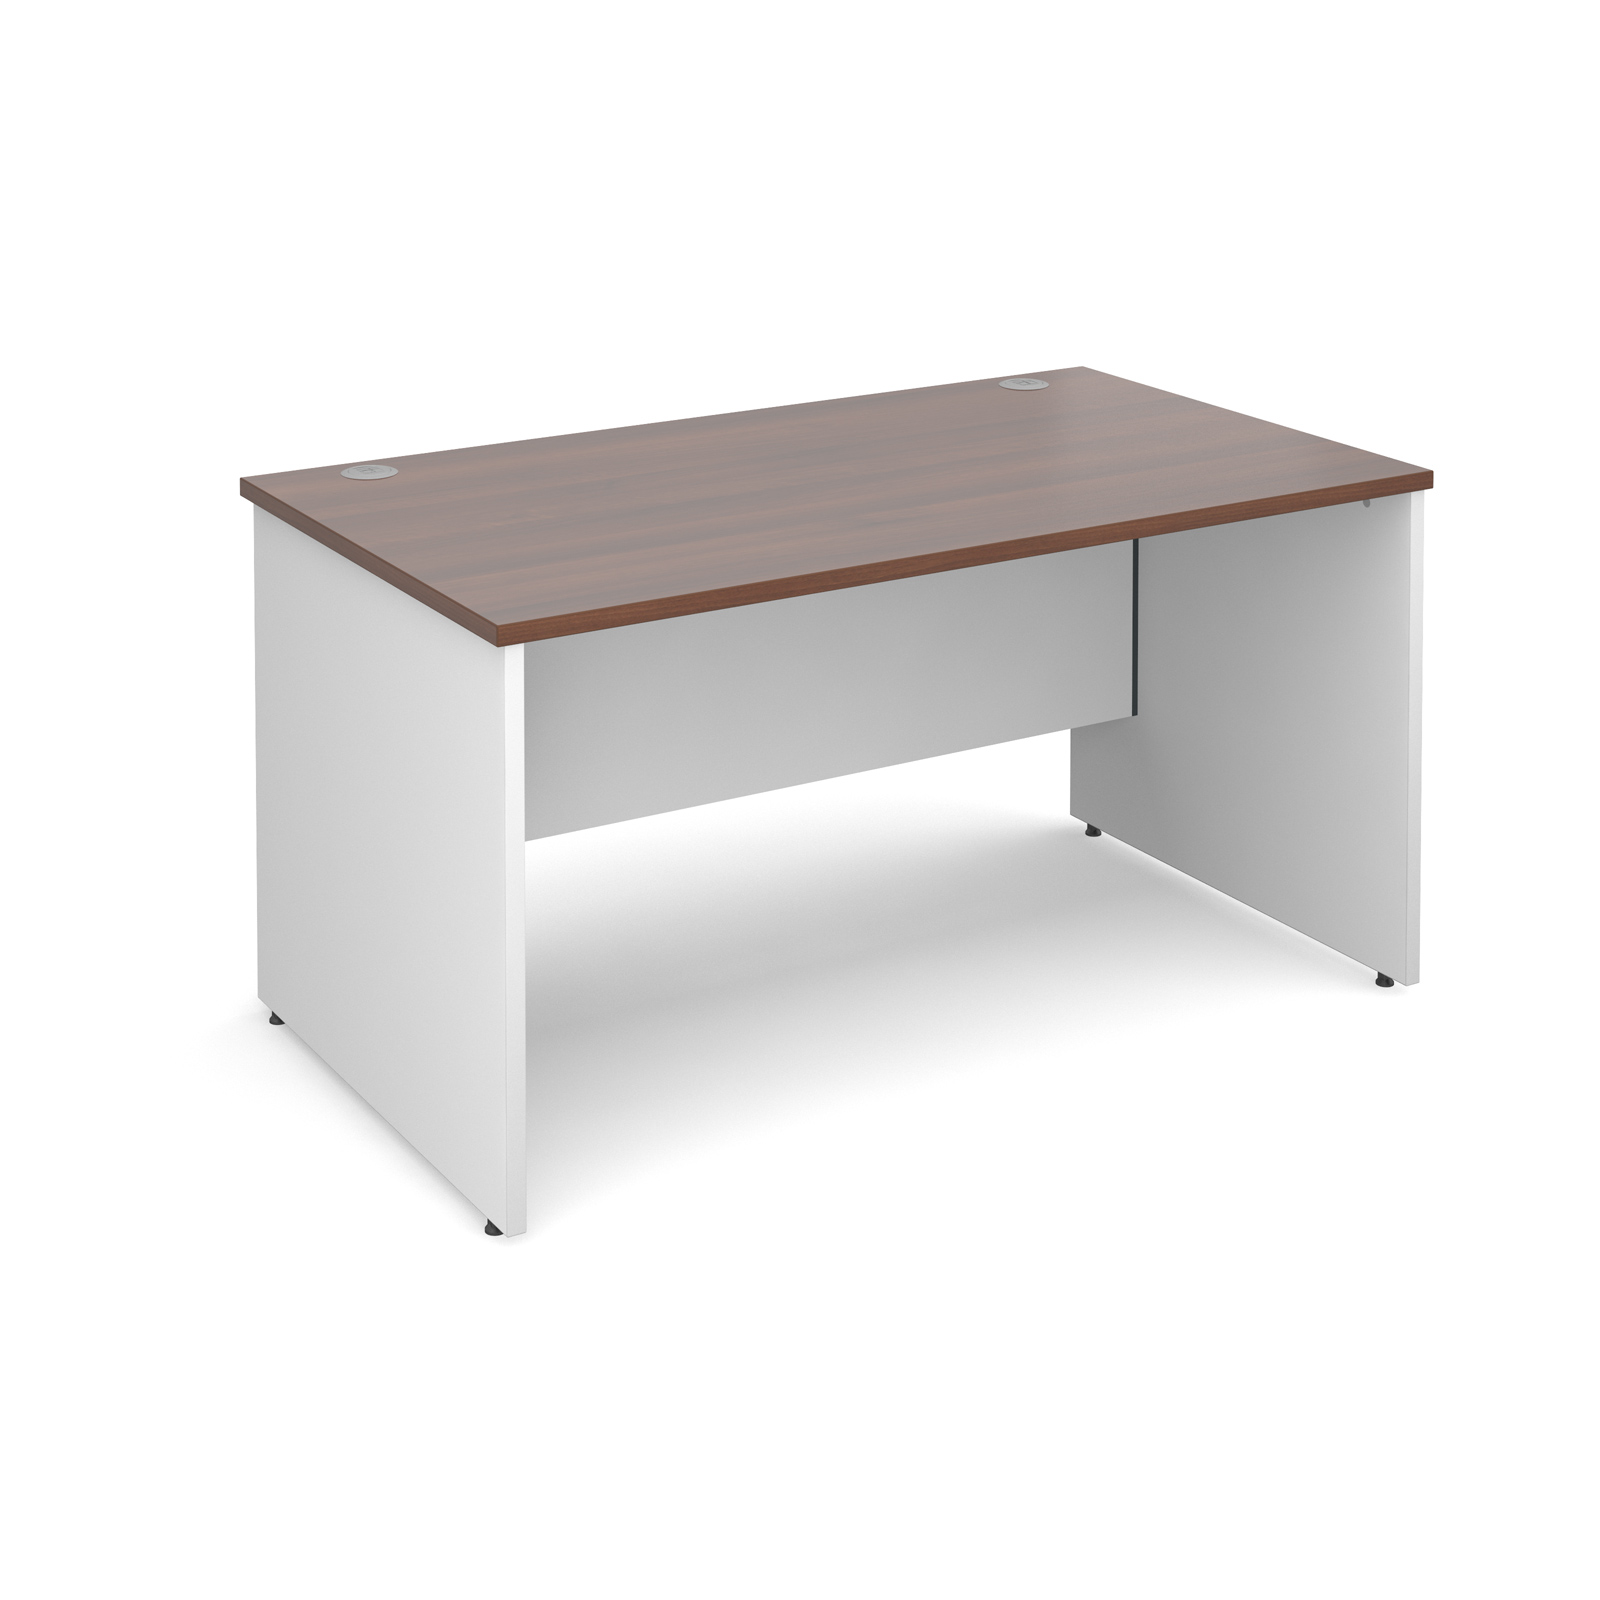 Duo Panel End Desk 1400 Wide X 800 Deep Walnut Tops With White Legs 25mm Top 18mm Back